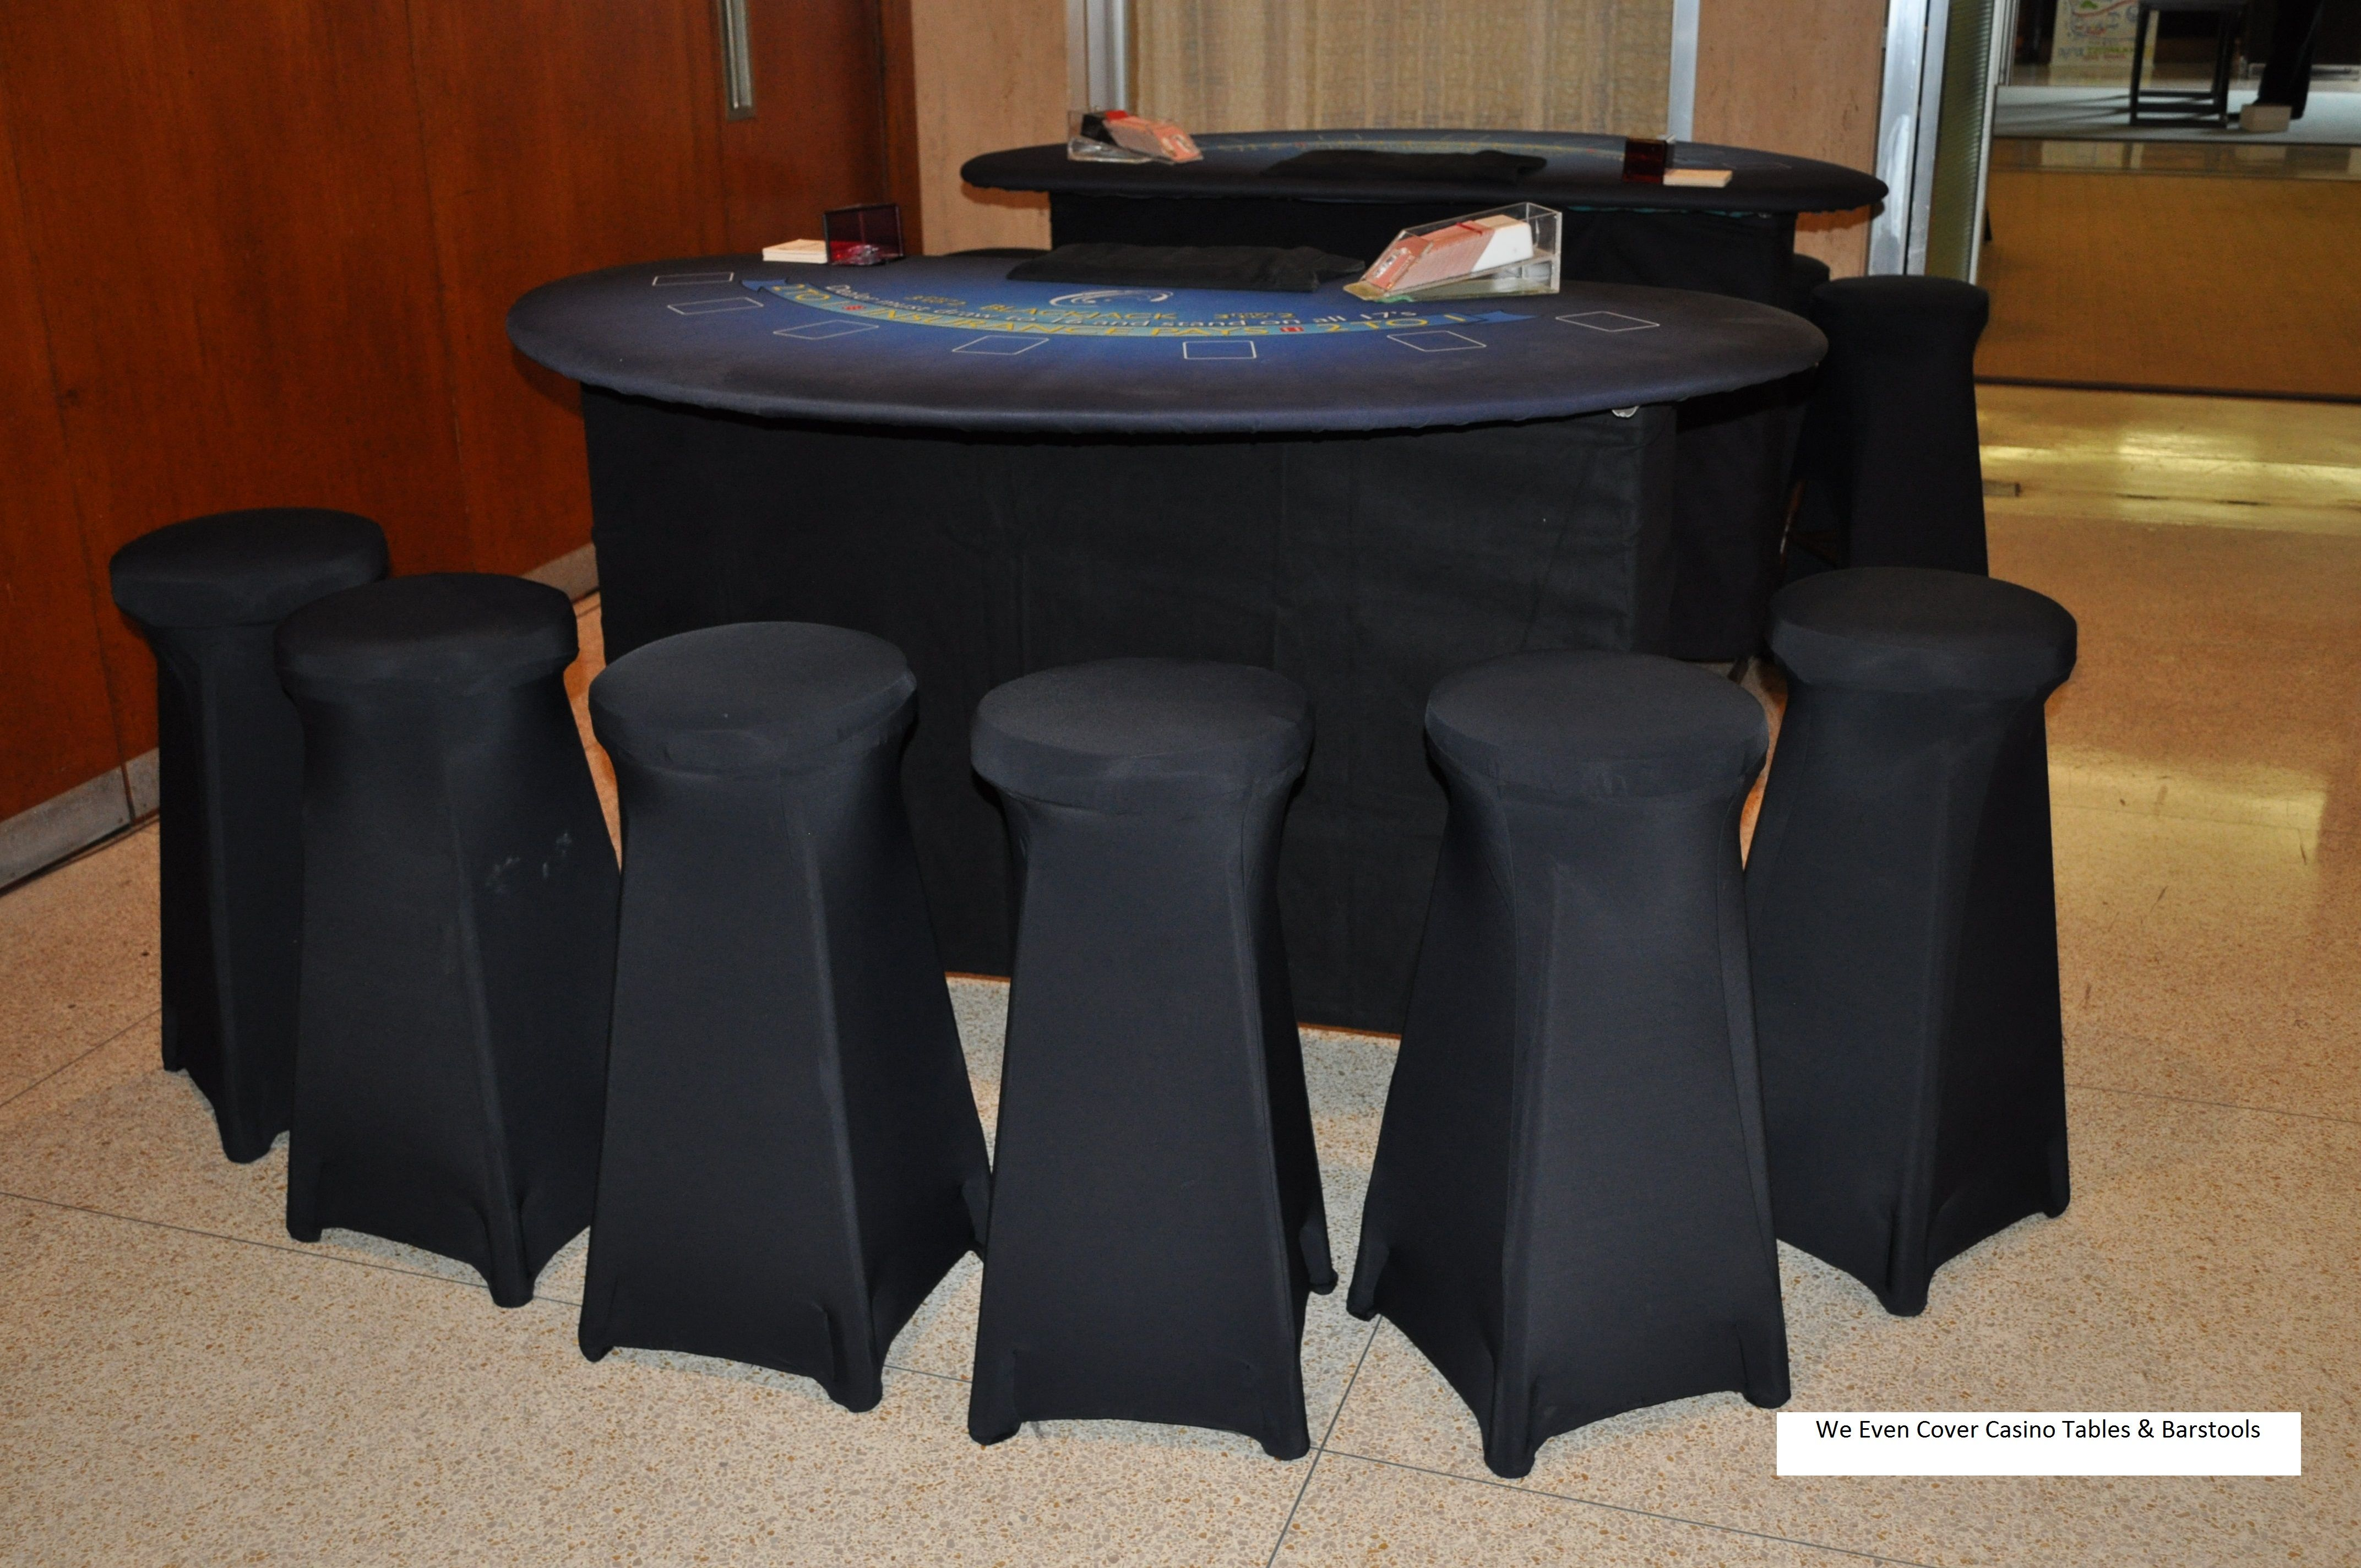 EventScapes/CCP Events - Casino Table & Barstool Covers add quality and a sleek look to any event!